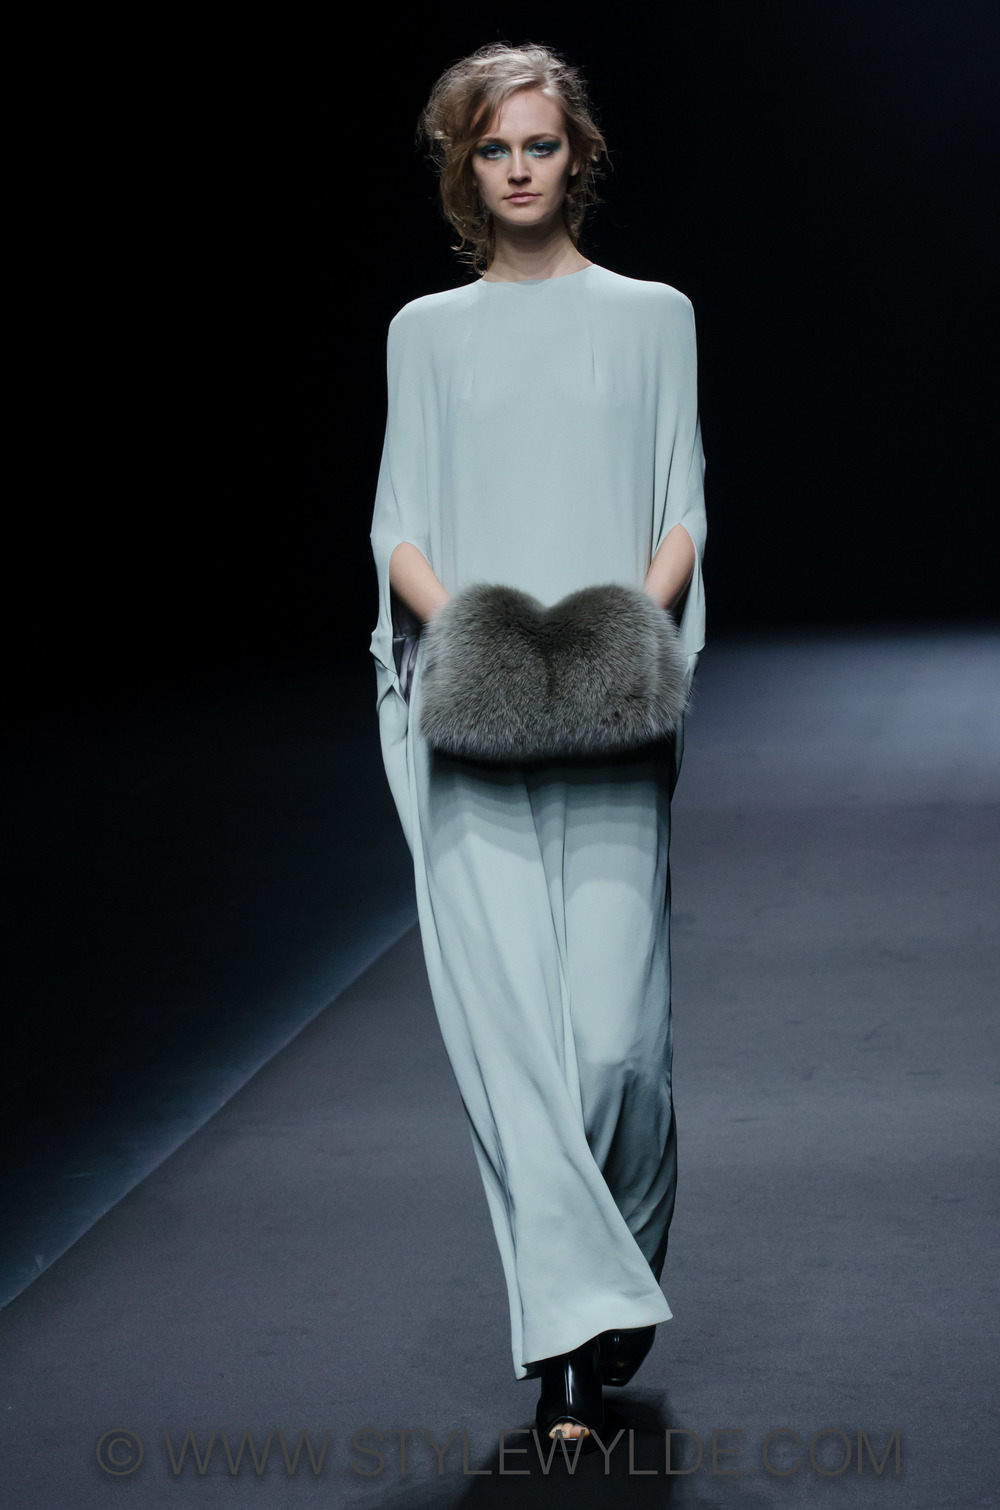 stylewylde_ADF_AW14_edited (14 of 22).jpg